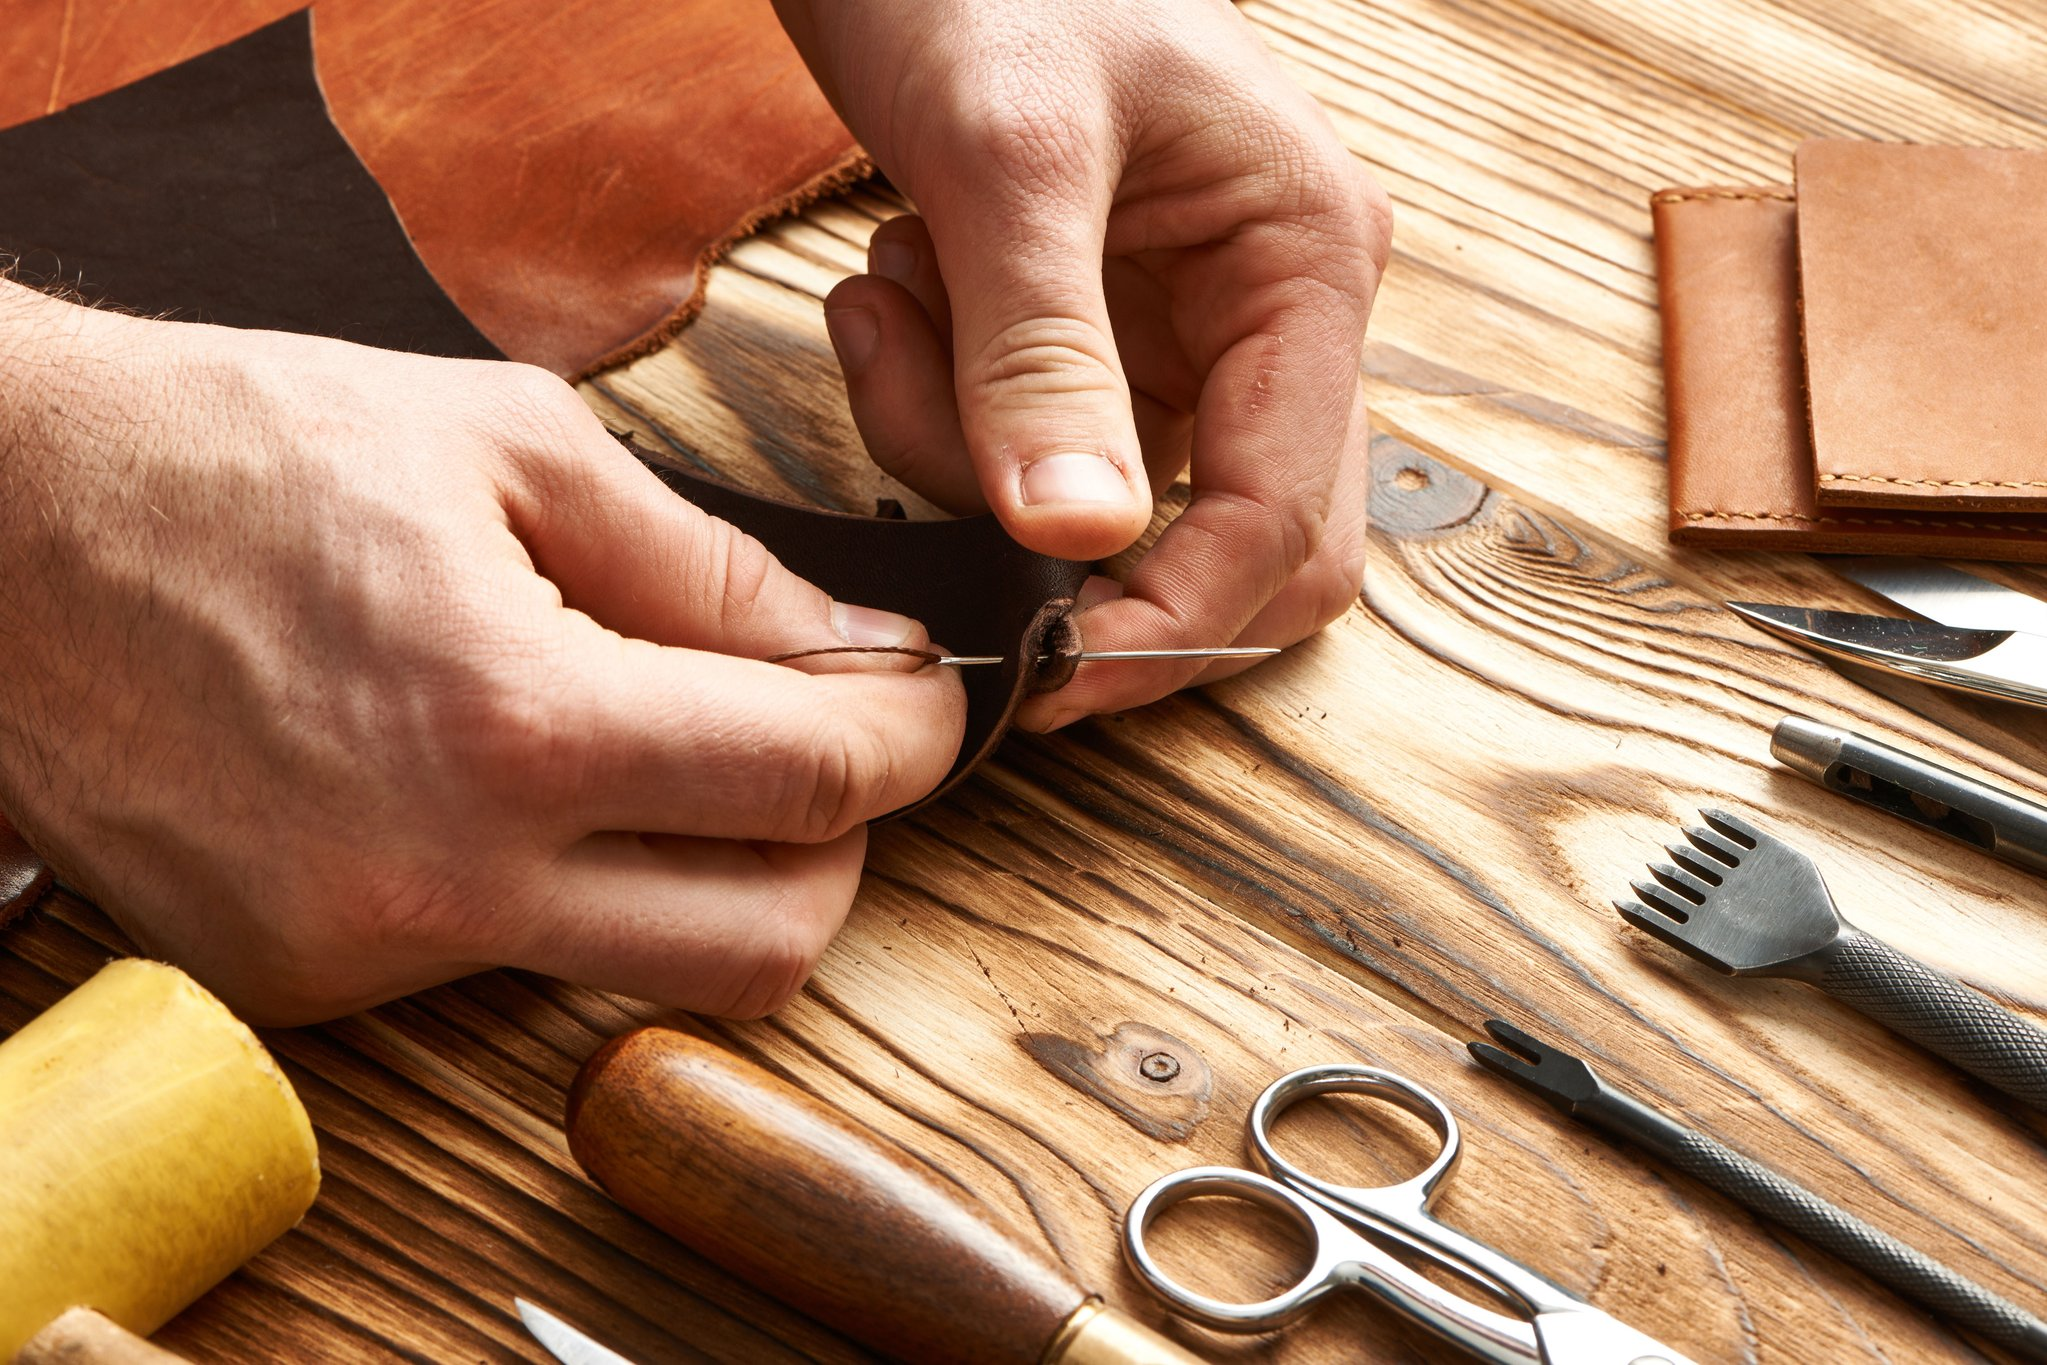 Made in Italy The Most Exquisite Craftsmanship in the World - Craftsmanship Tools made in italy Made in Italy: The Most Exquisite Craftsmanship in the World Made in Italy The Most Exquisite Craftsmanship in the World Craftsmanship Tools